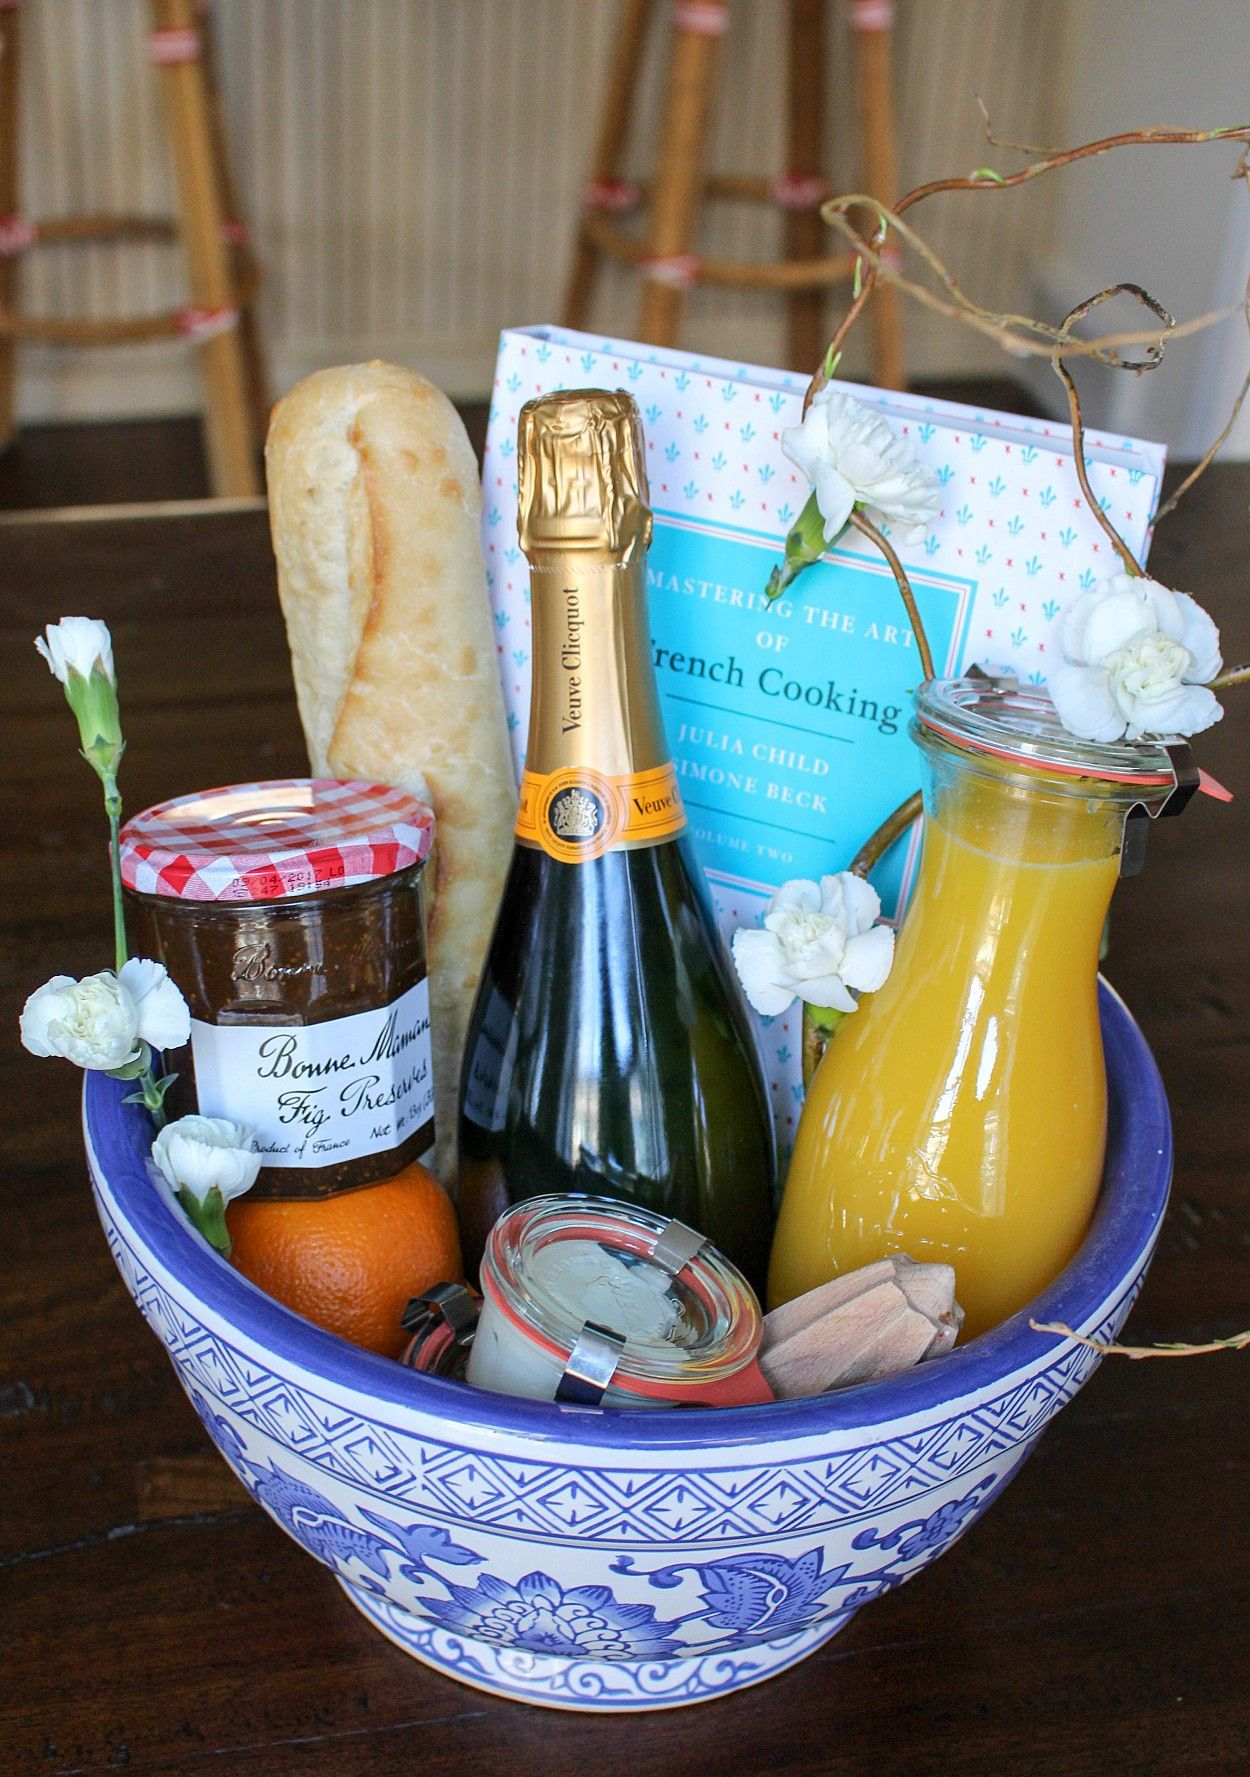 An edible gift basket inspired by the beauty of provence